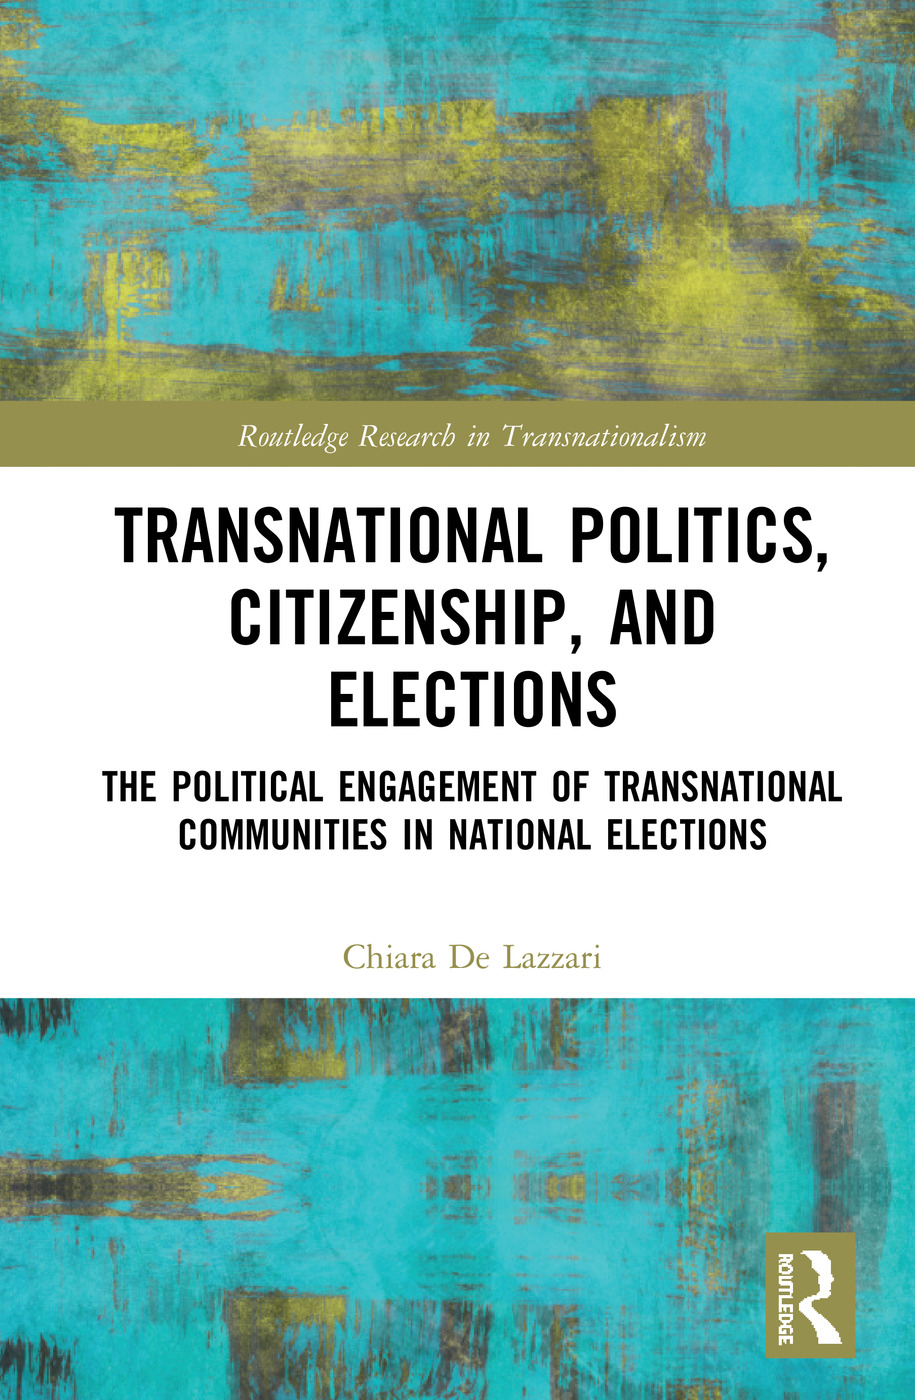 Transnational Politics, Citizenship, and Elections